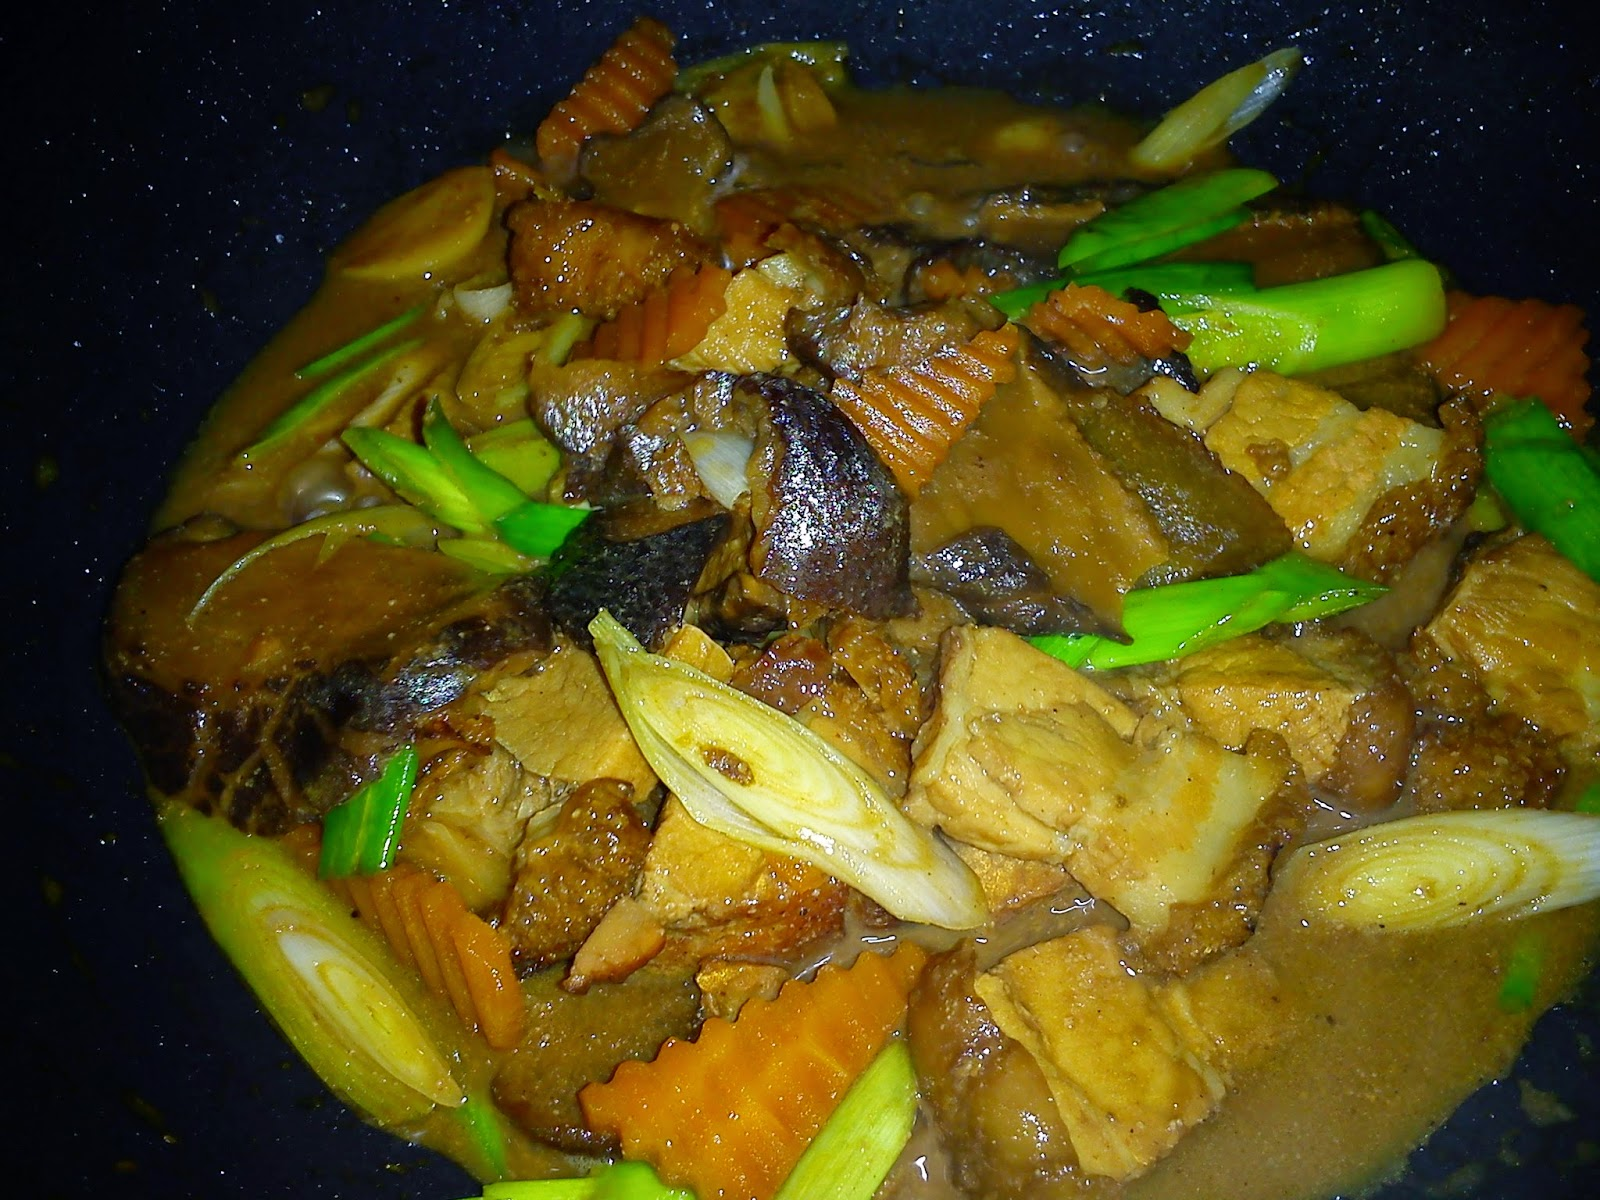 Cooking Pleasure: BRAISED SEA CUCUMBER WITH ROASTED PORK